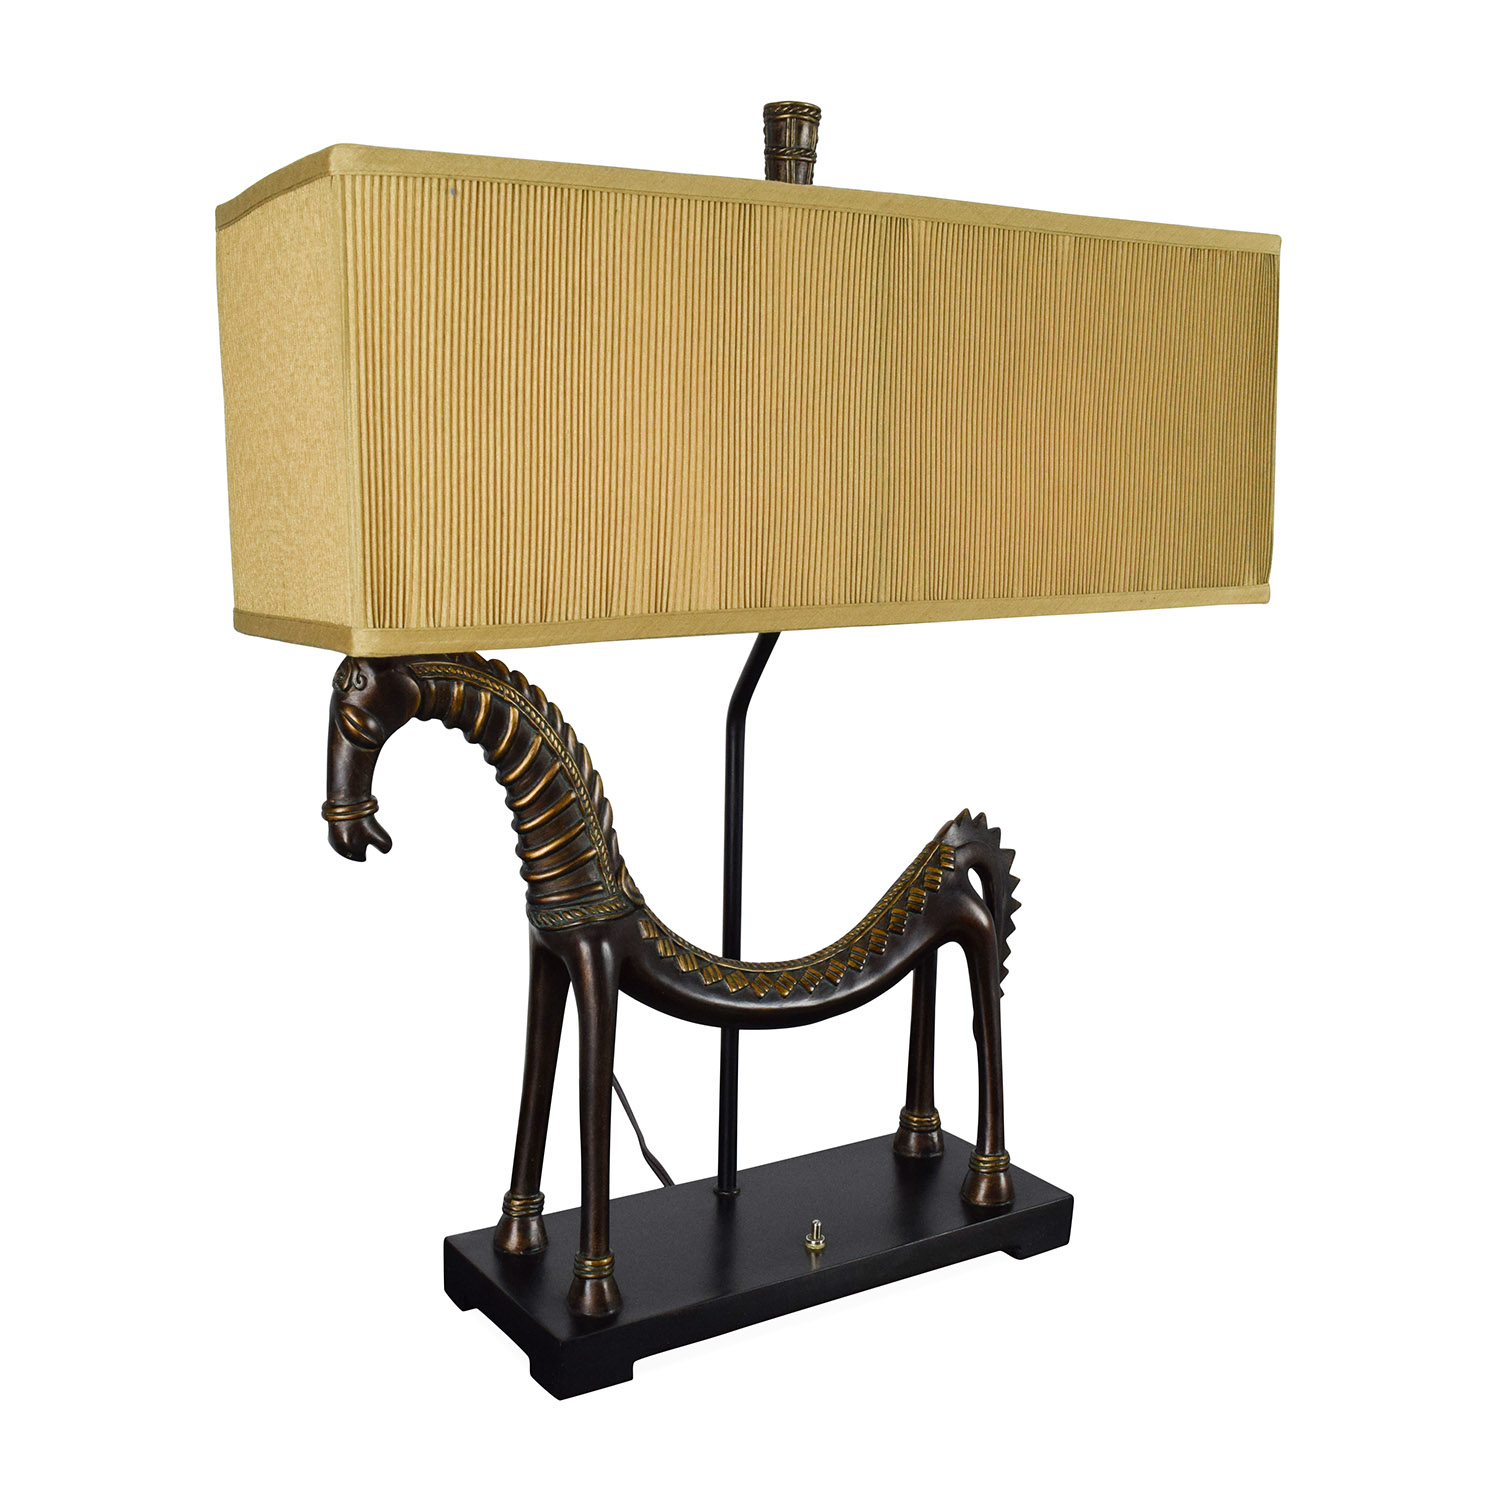 Finest 21% OFF - Uttermost Uttermost Tamil Horse Table Lamp / Decor TE49